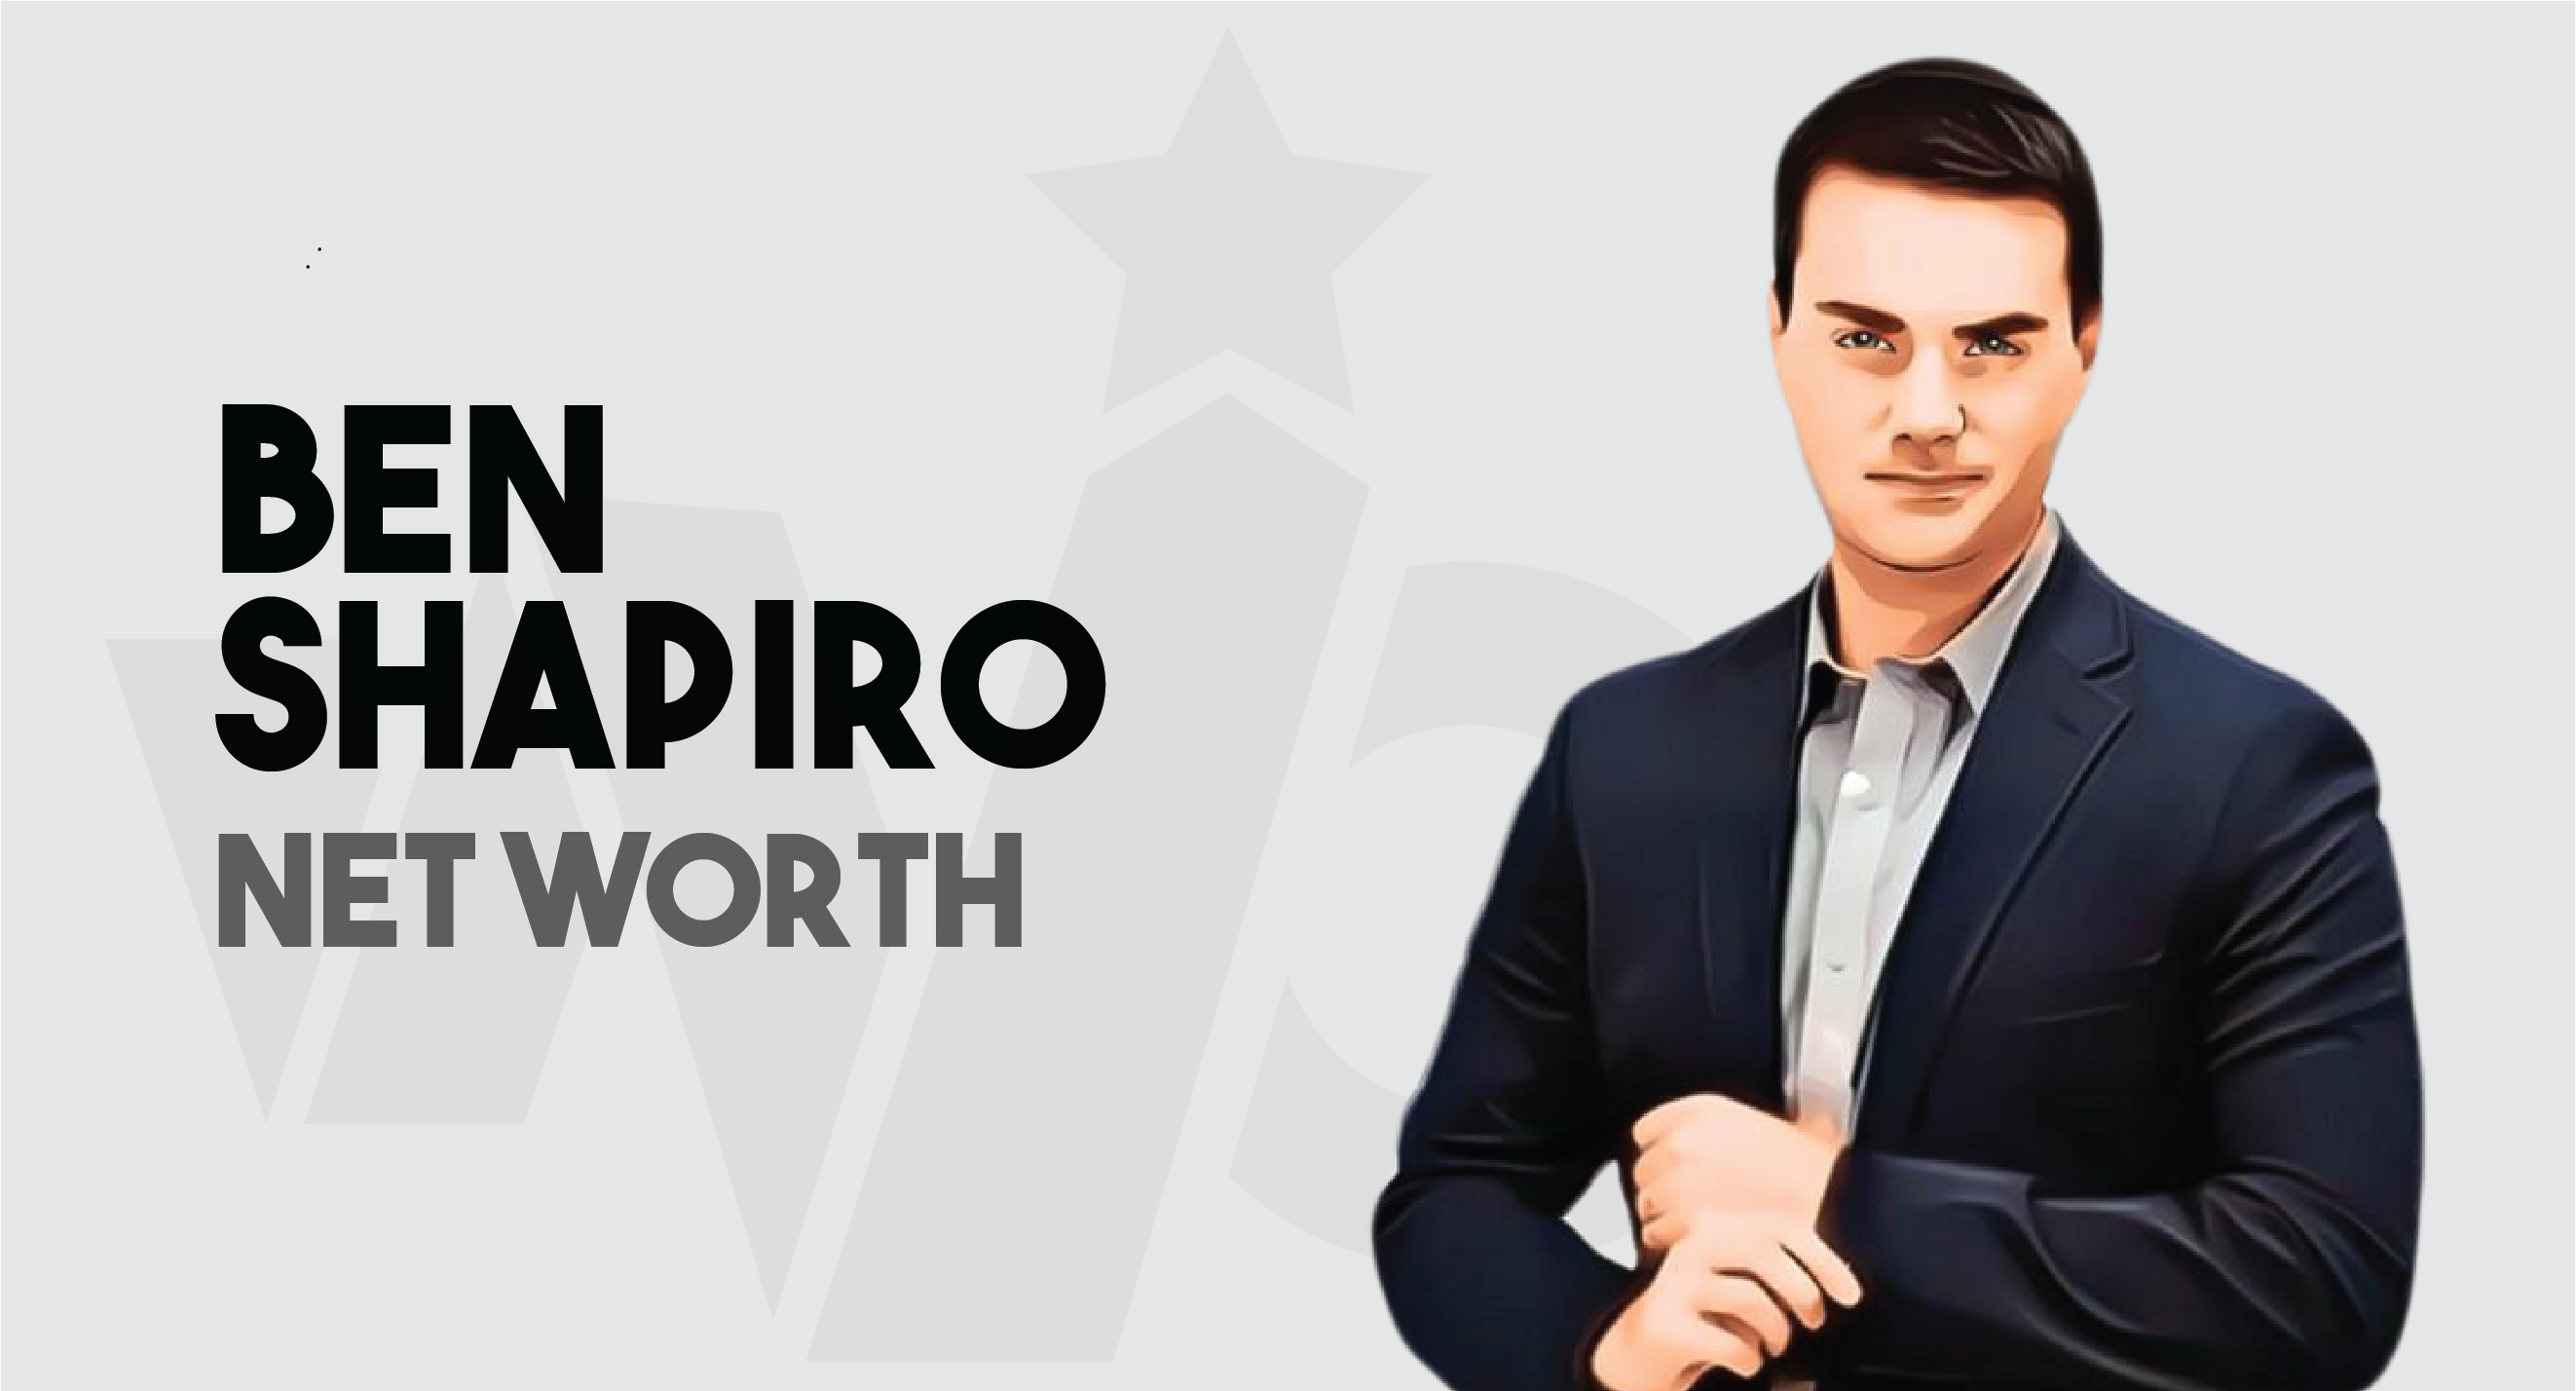 Ben Shapiro_Net worth